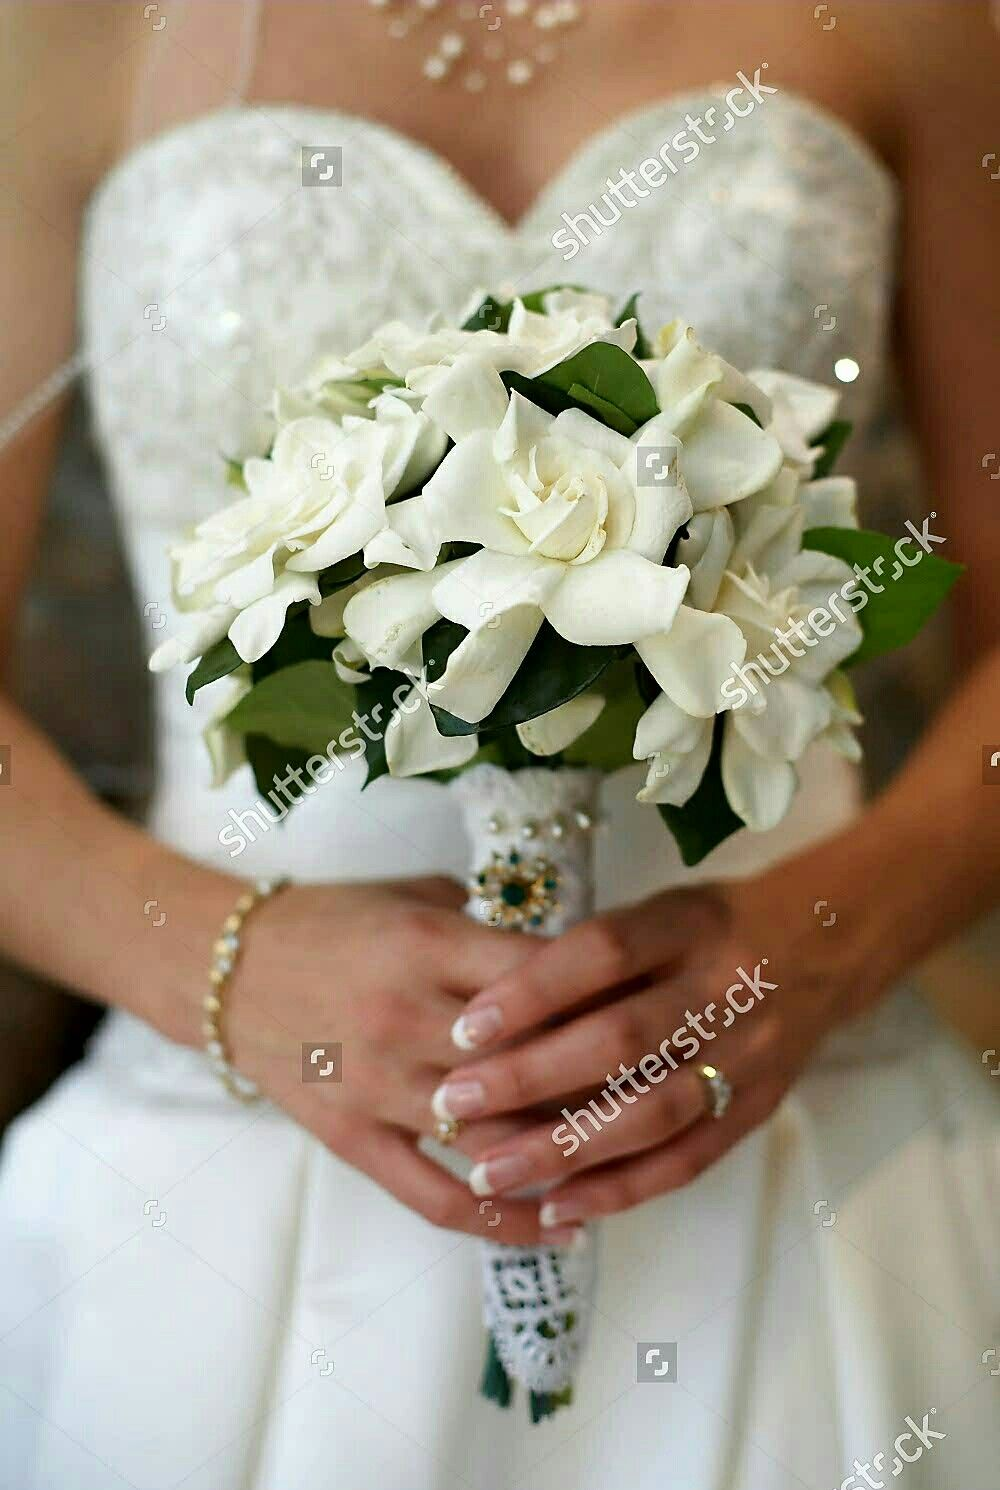 Simple But Stunning White Gardenias Greenery Bridal Bouquet Wedding Flower Inspiration Flower Bouquet Wedding Wedding Bouquets